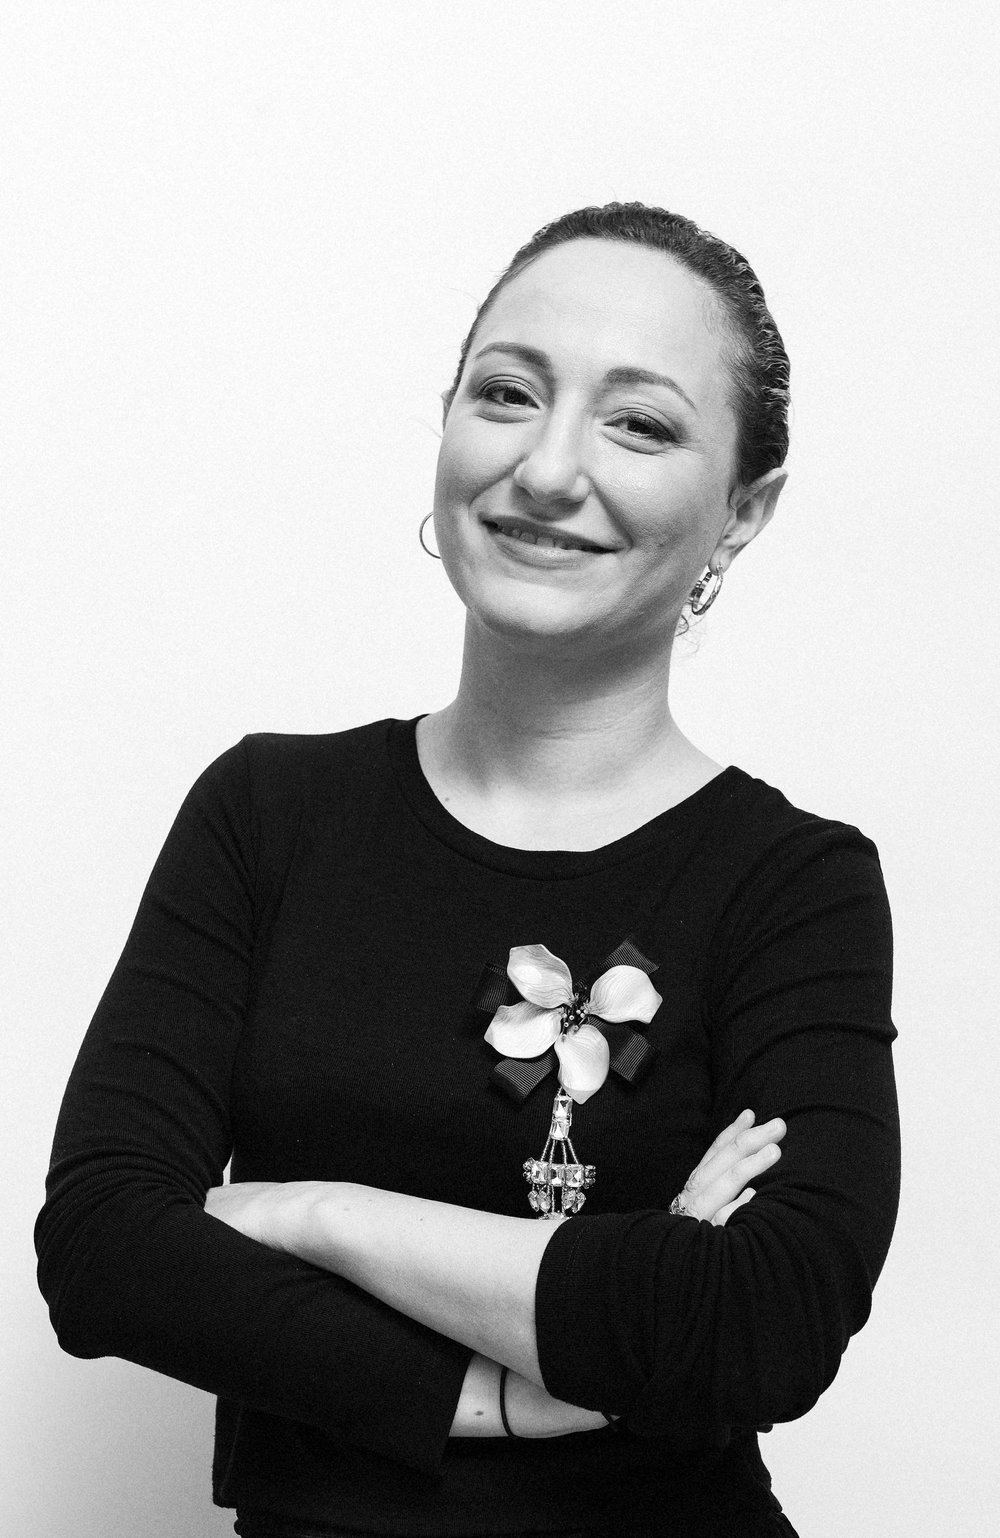 Alessia MANSUTTI, Interior DESIGNER, EXECUTIVE TEAM